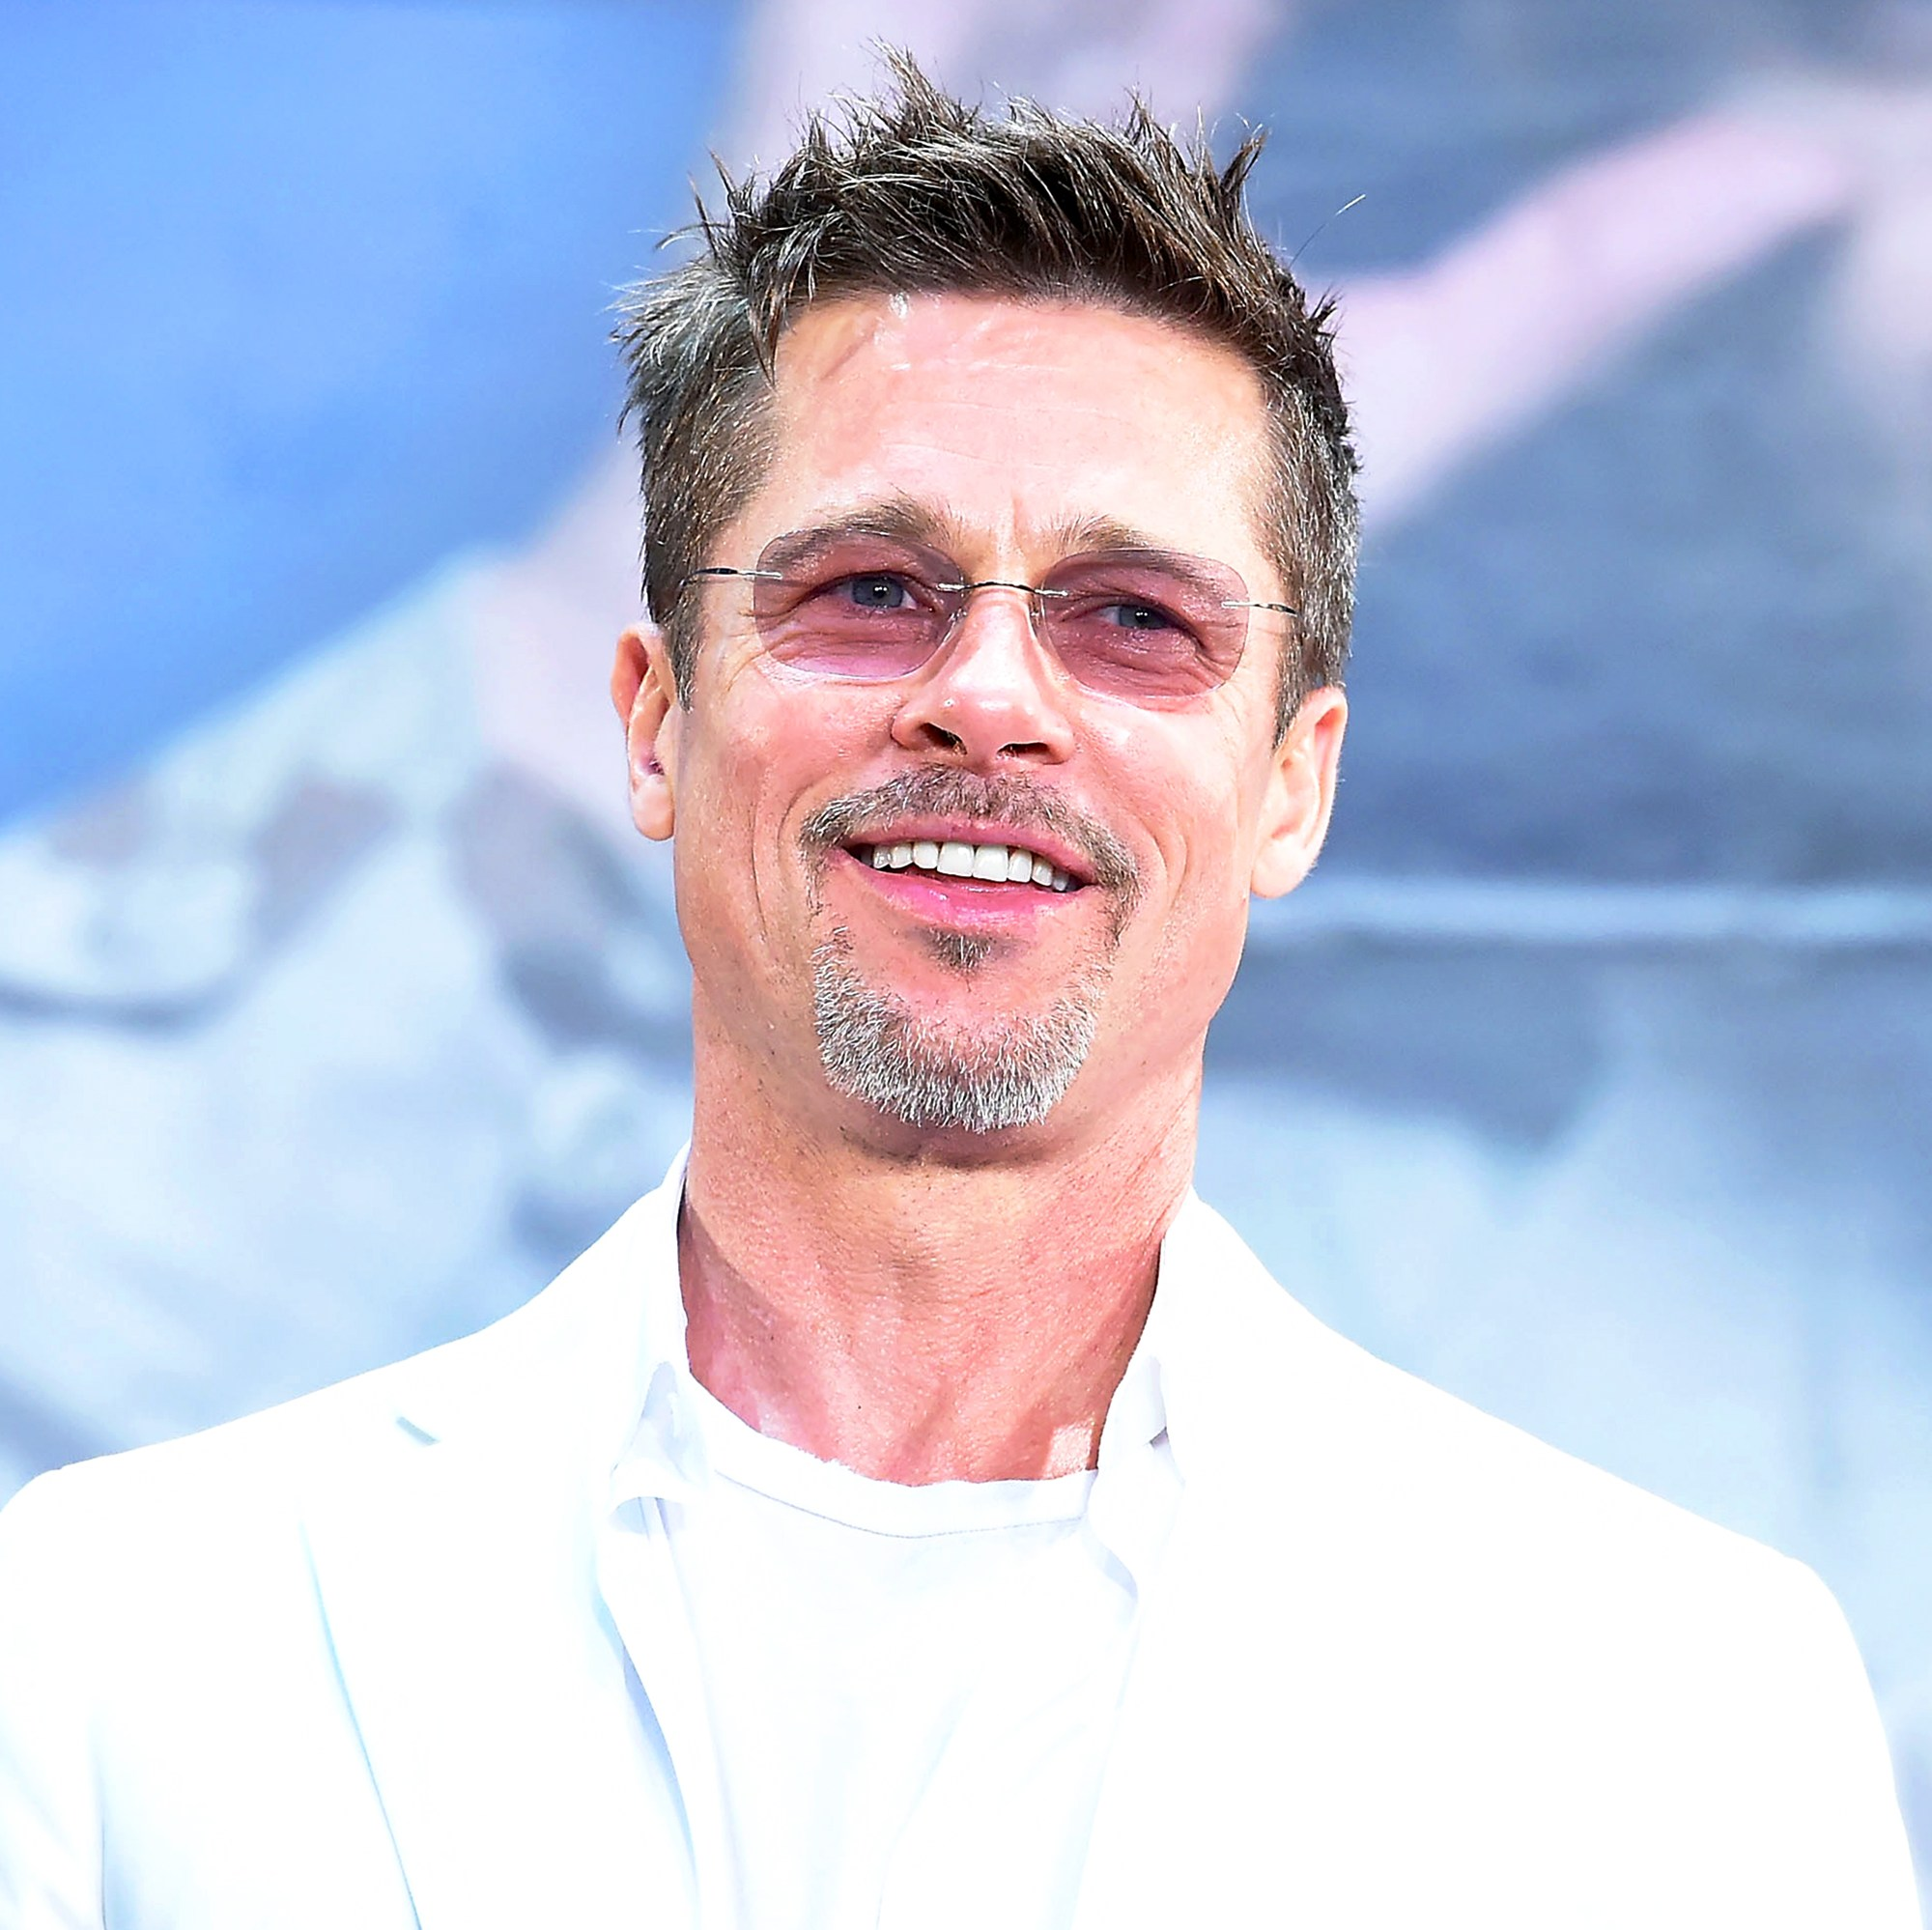 Brad Pitt attends the 2017 premiere for 'War Machine' at Roppongi Hills in Tokyo, Japan.